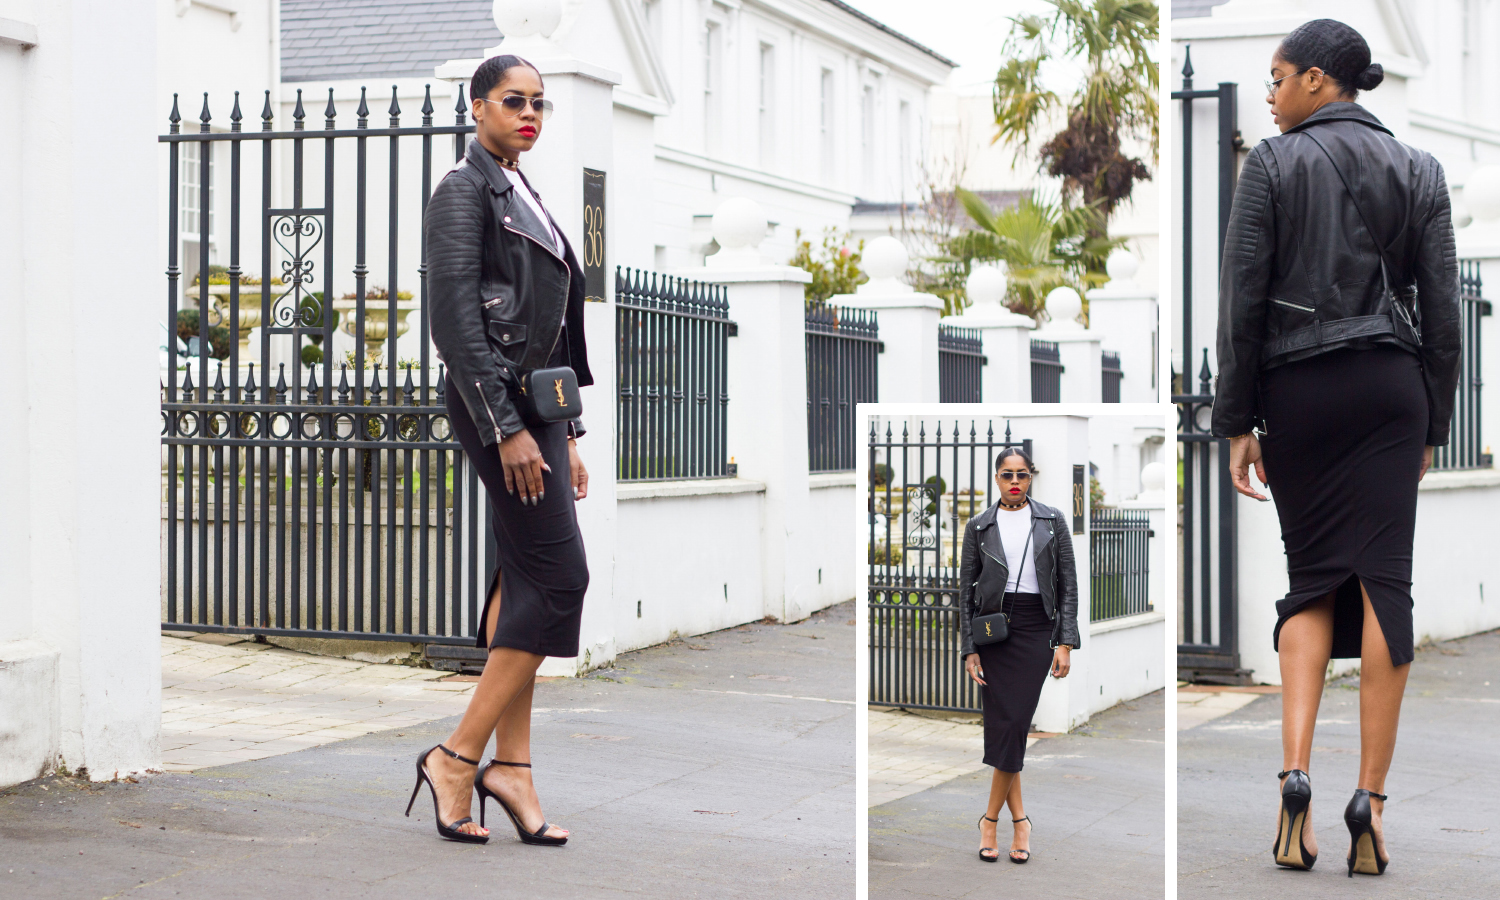 cyrena monique chain outfits look 4